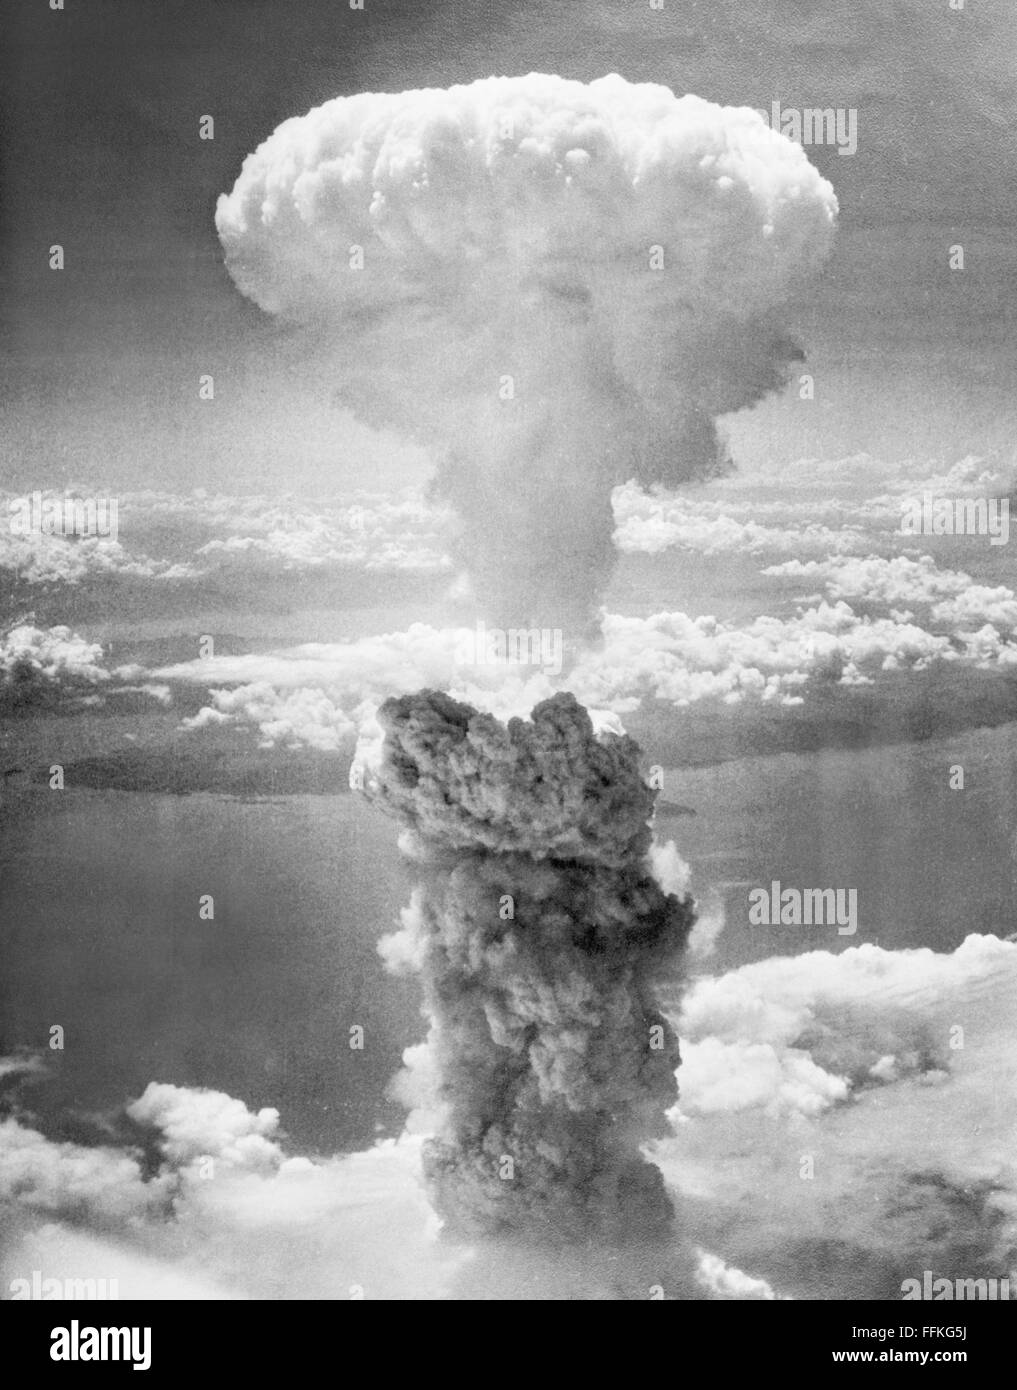 Atomic Bomb. The mushroom cloud from the second atomic bomb, 'Fat Man', dropped on Nagasaki, Japan on August - Stock Image